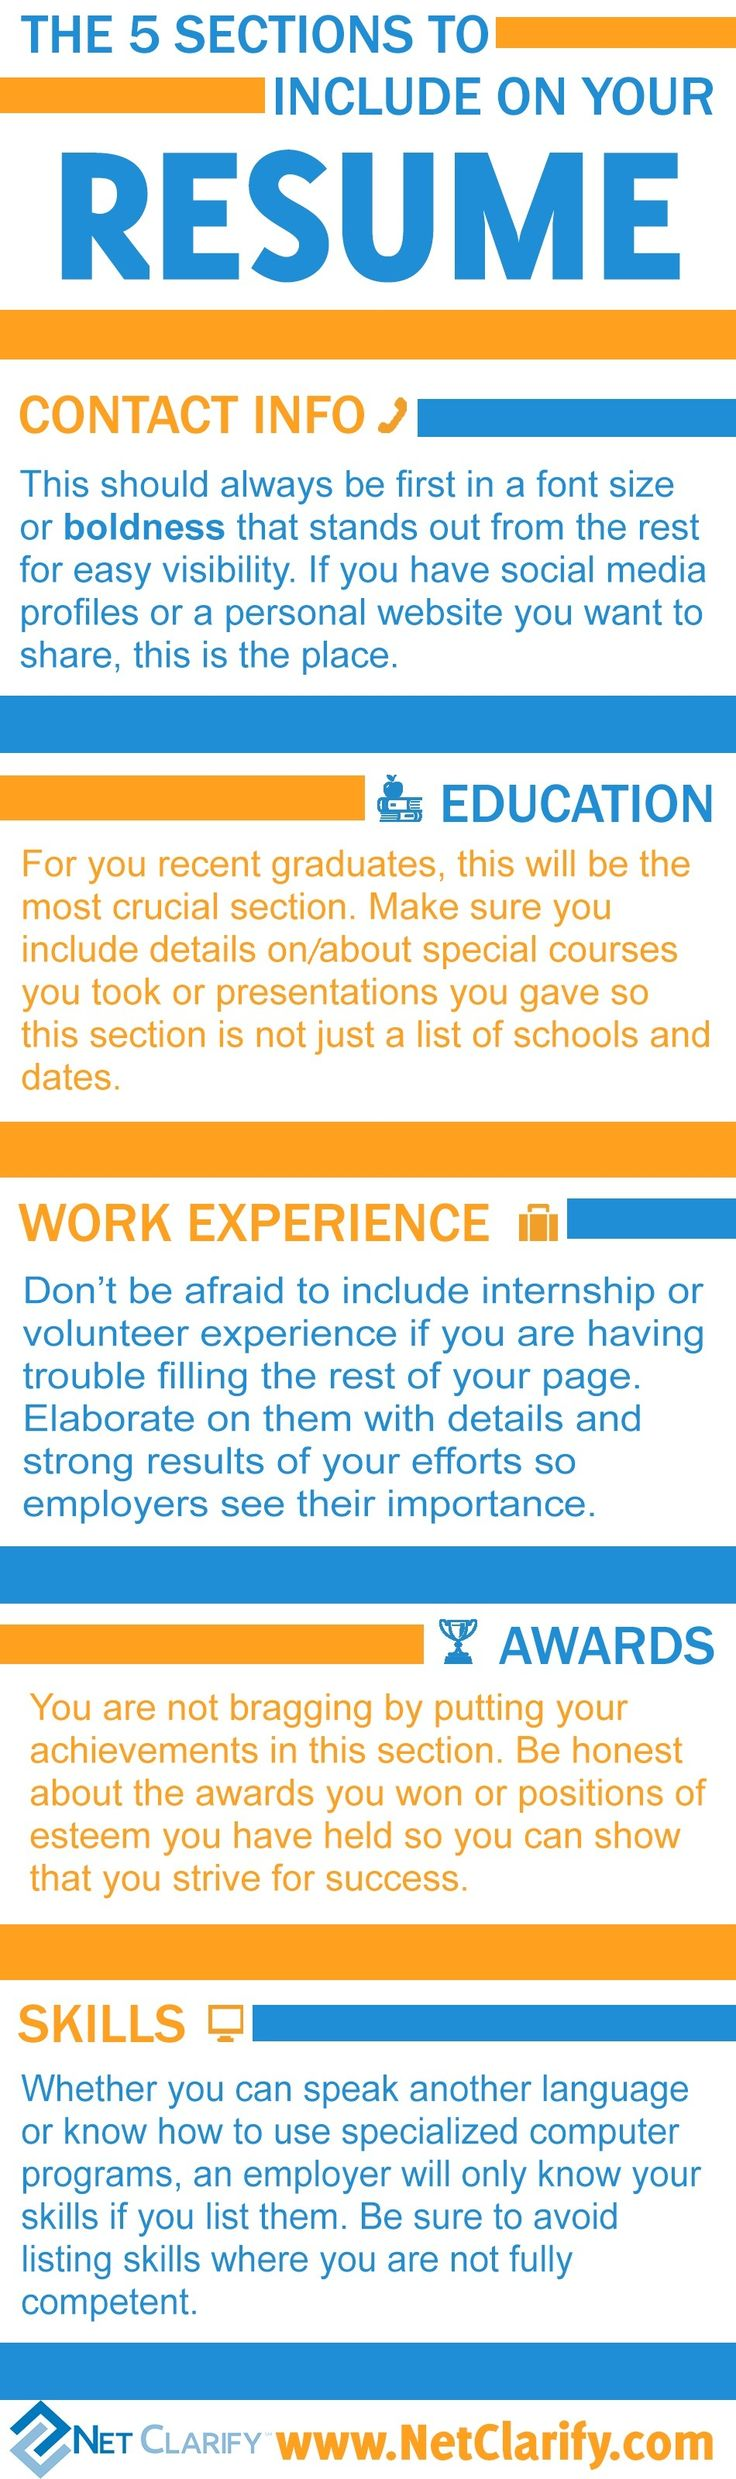 best images about resume ideas from niagara college on 17 best images about resume ideas from niagara college resume tips creative resume and cv template